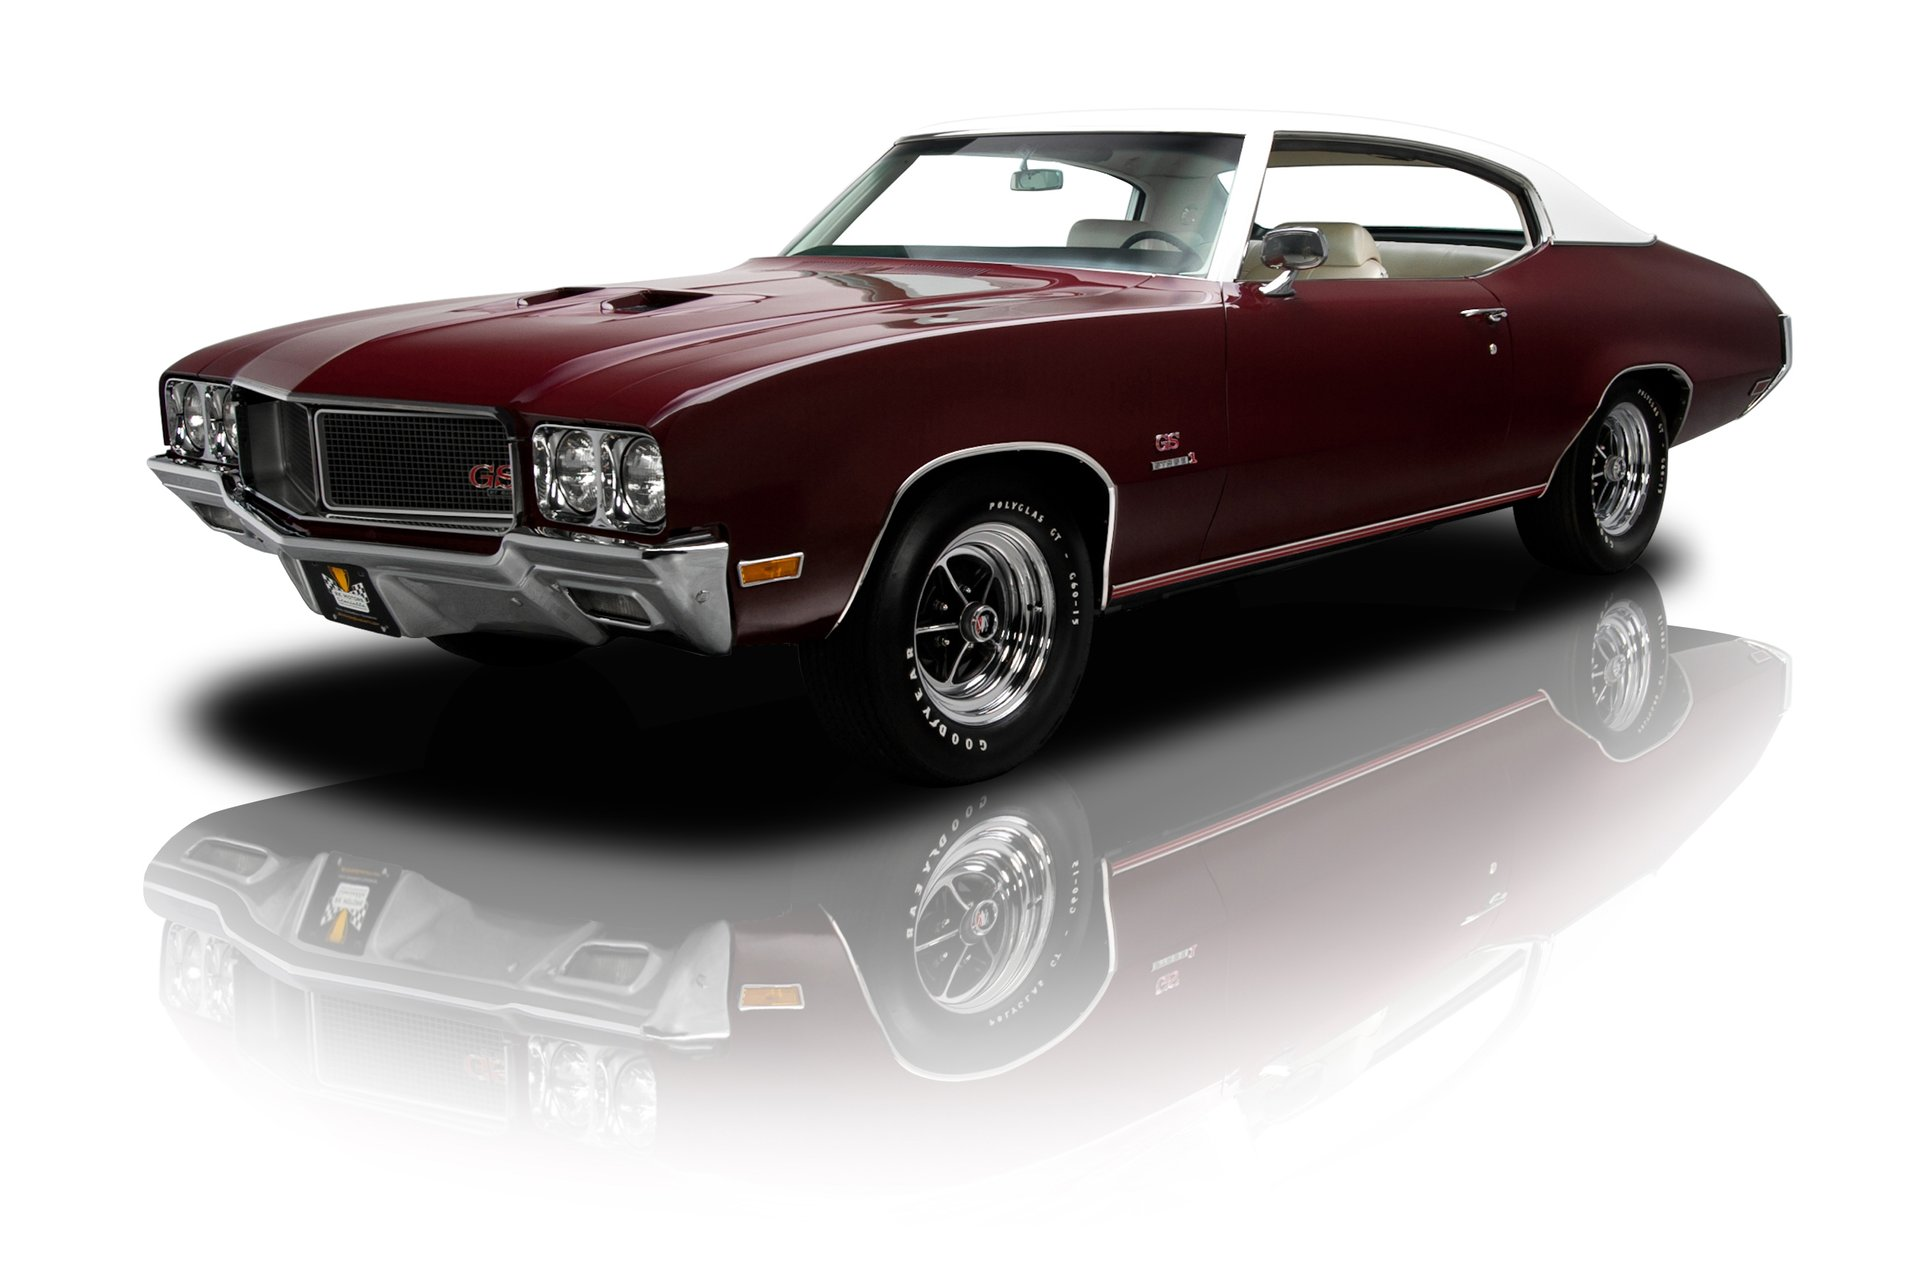 1970 buick gs455 stage 1